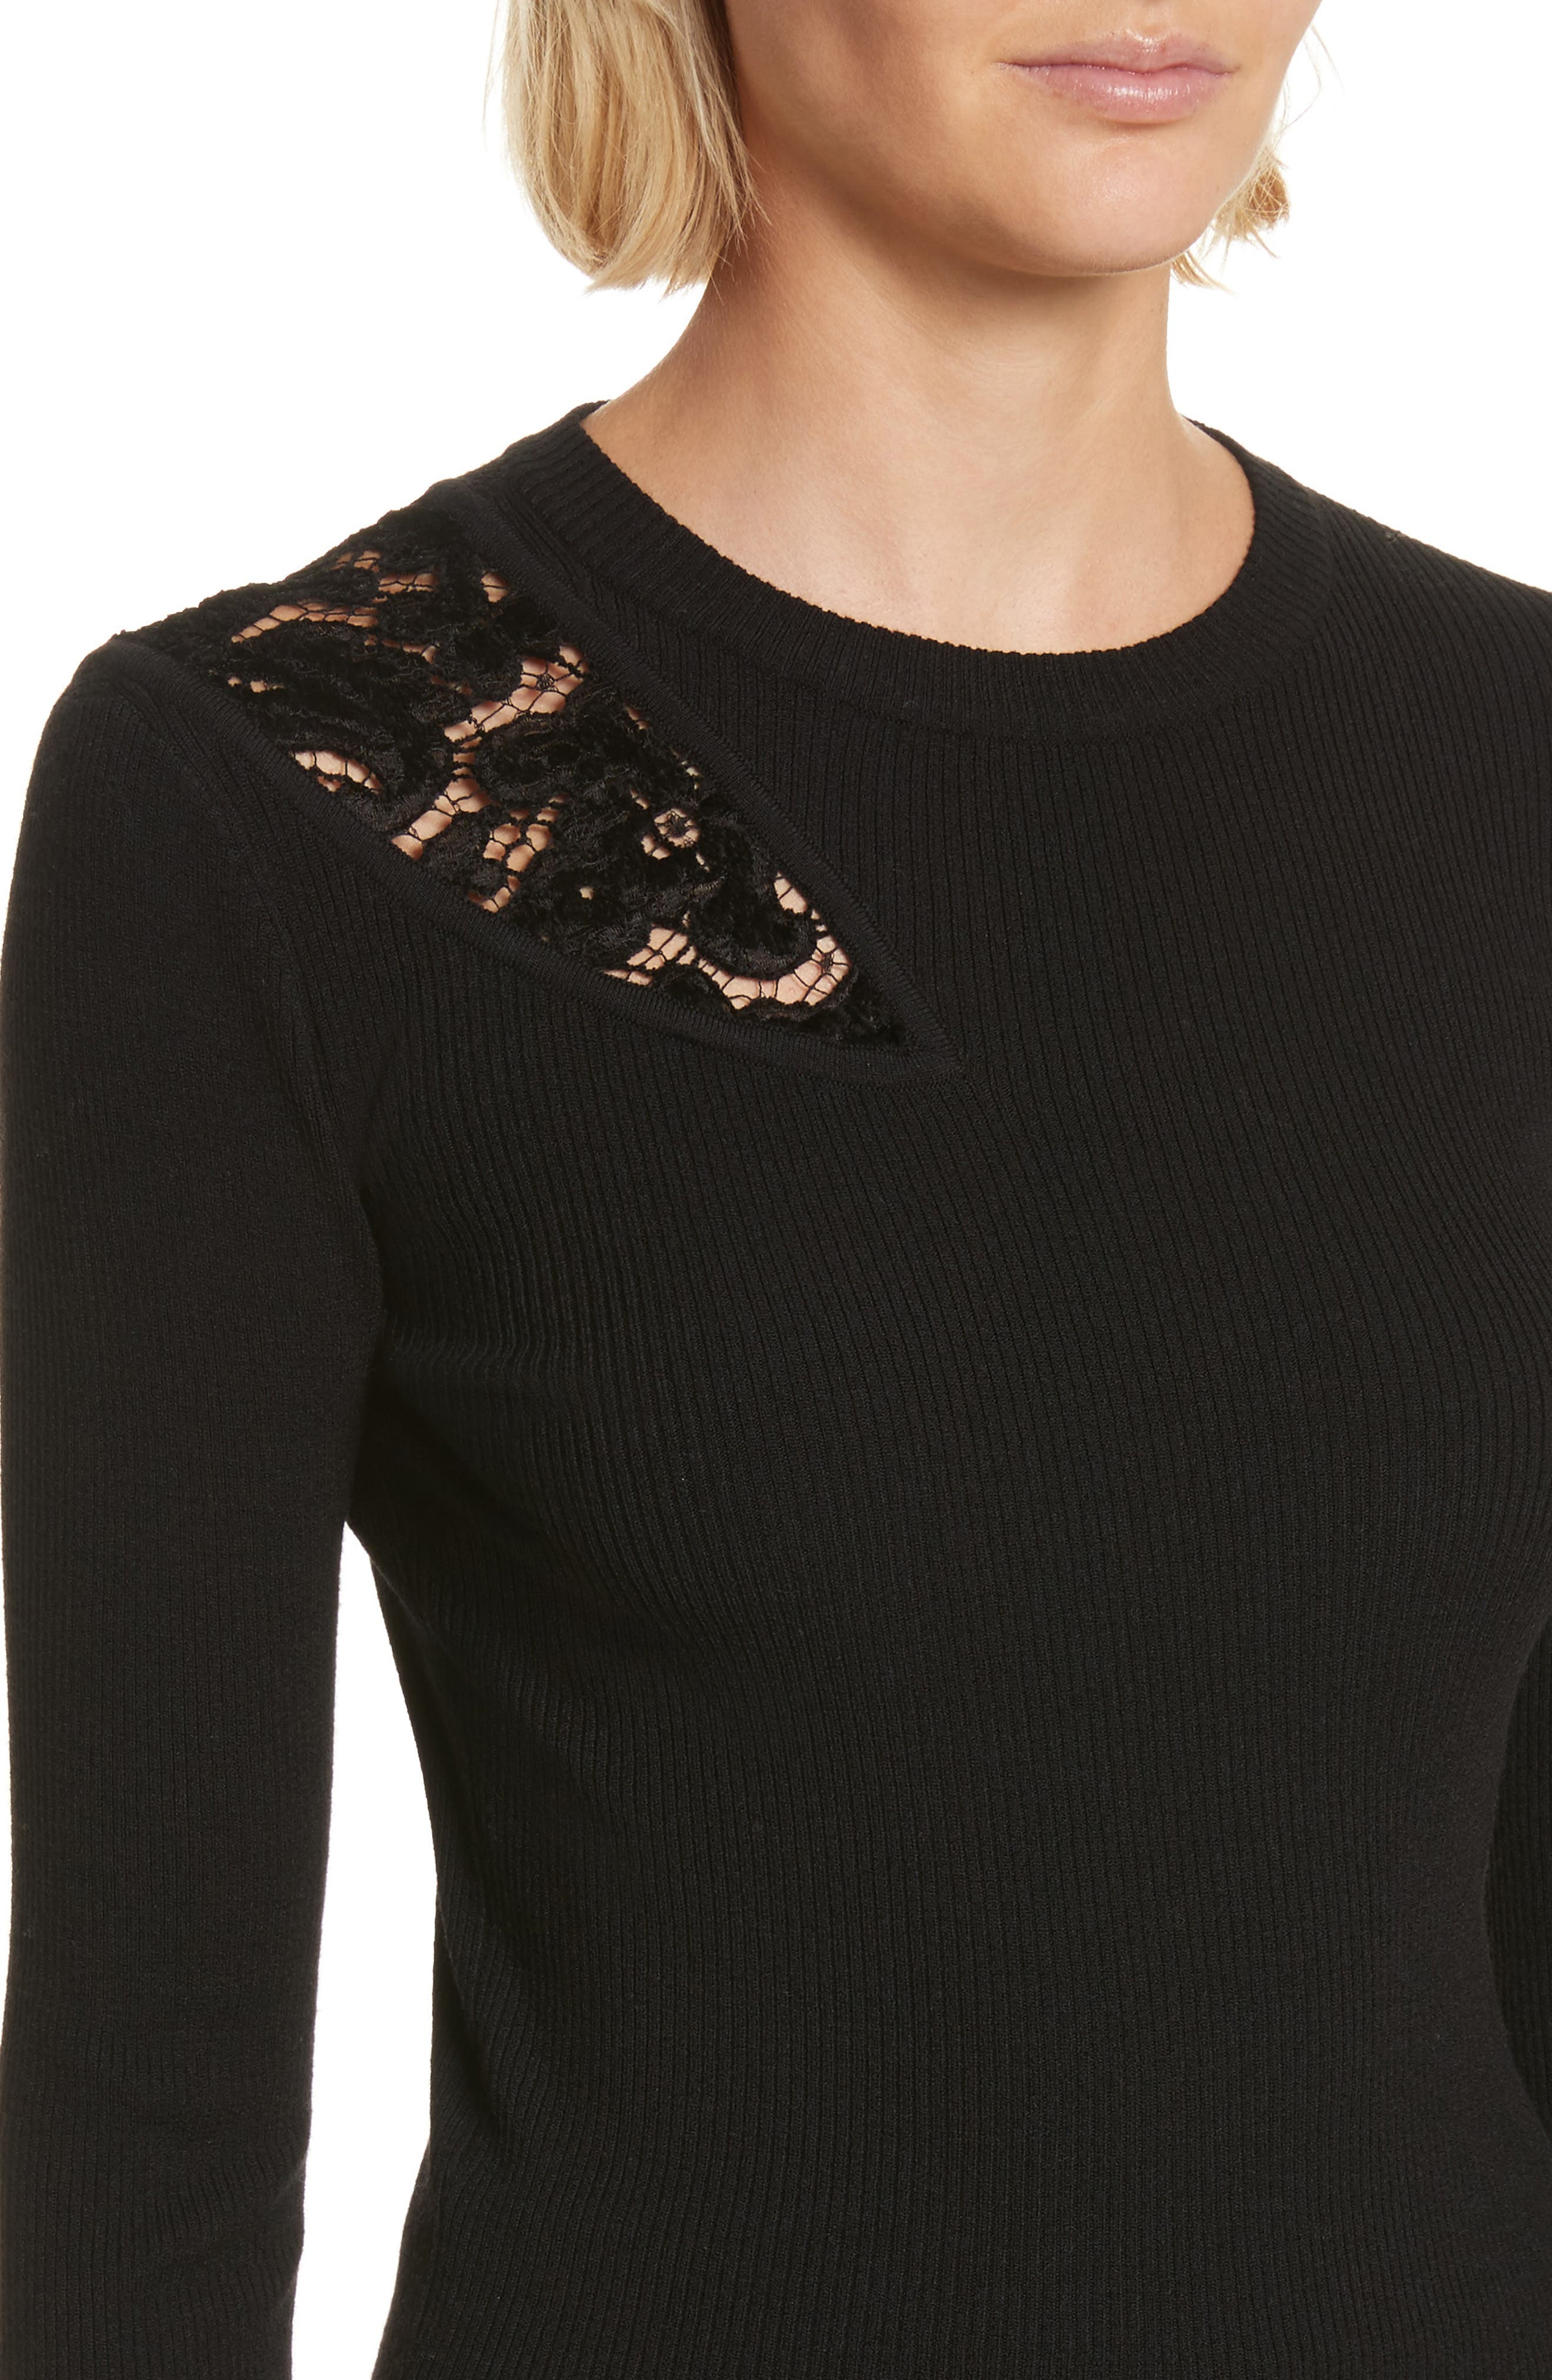 Terence Lace Inset Sweater,                             Alternate thumbnail 4, color,